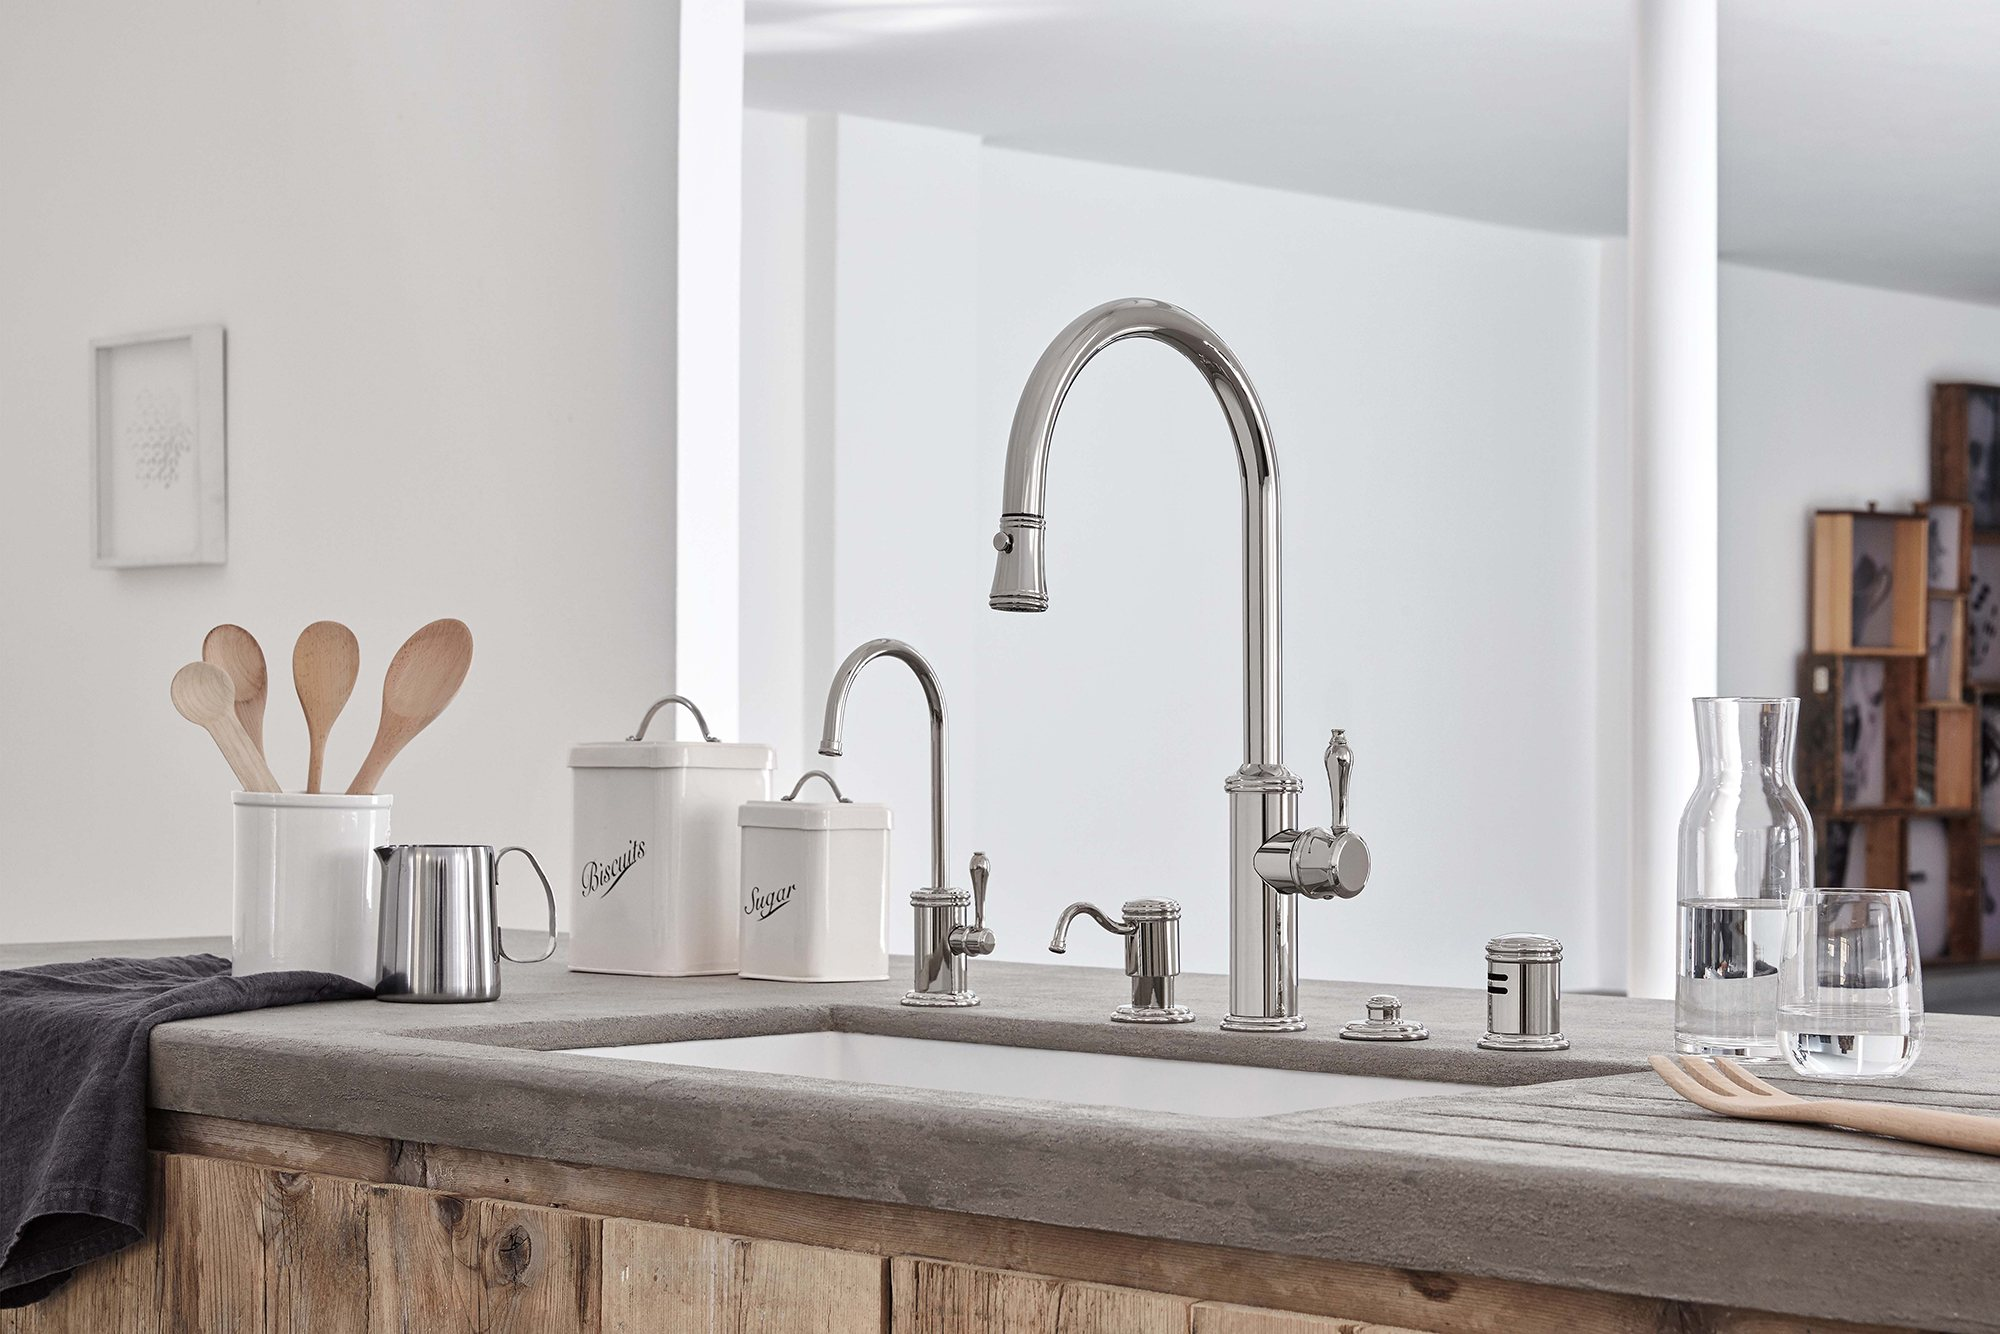 california faucets is simplifying kitchen design